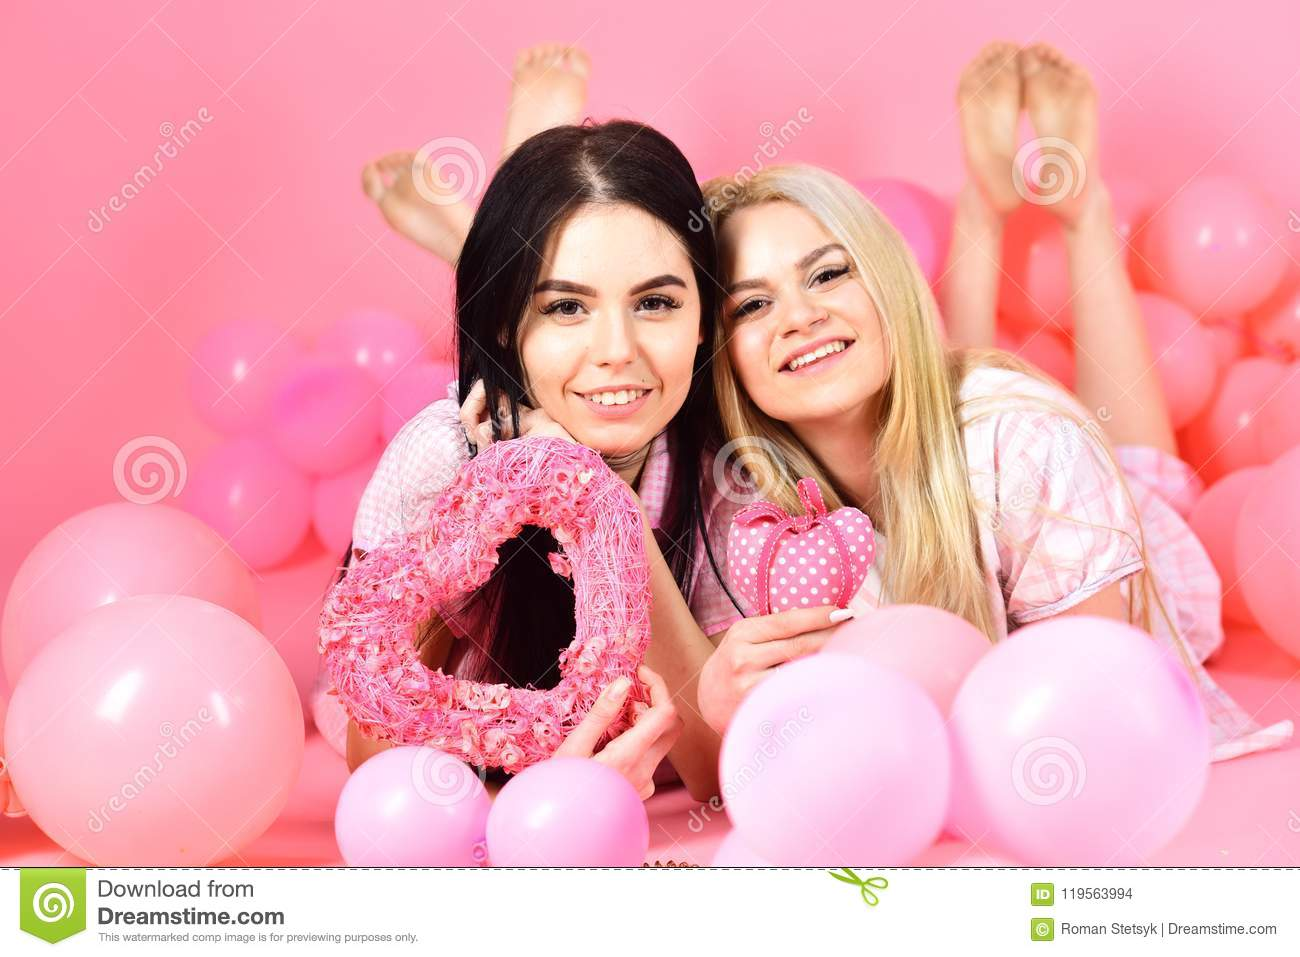 Blonde and brunette with toys